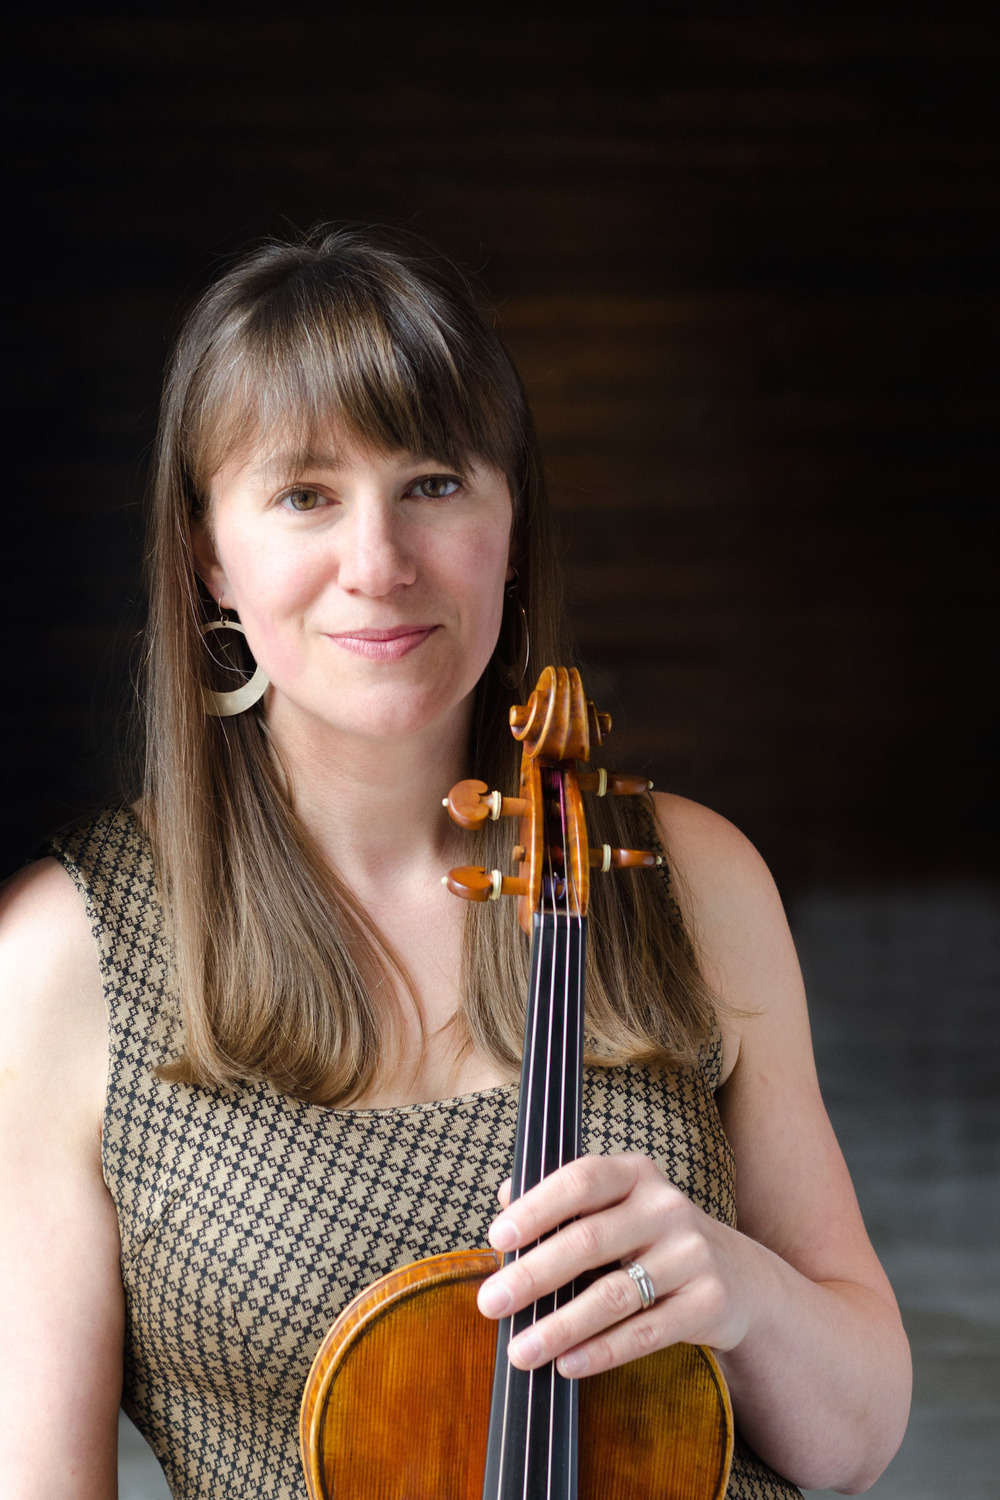 "Erielle Bakkum, Violist Founding Member  DePaul University School of Music         Normal   0           false   false   false     EN-US   KO   X-NONE                                                                                                                                                                                                                                                                                                                                                                              /* Style Definitions */ table.MsoNormalTable 	{mso-style-name:""Table Normal""; 	mso-tstyle-rowband-size:0; 	mso-tstyle-colband-size:0; 	mso-style-noshow:yes; 	mso-style-priority:99; 	mso-style-parent:""""; 	mso-padding-alt:0in 5.4pt 0in 5.4pt; 	mso-para-margin:0in; 	mso-para-margin-bottom:.0001pt; 	mso-pagination:widow-orphan; 	font-size:10.0pt; 	font-family:""Times New Roman"";}       We are all searching for our inner voice, right? That's where the viola comes in, and your search can end with Erielle. Don't let her humility fool you -- her talents run far. If you spend your summers hitting the musical festivals in Chicago, like Pitchfork or the Hideout Block Festival, you've heard our gal playing with the likes of The Duchess and the Duke, and with Hamilton Leithauser. And when she isn't performing with QP, you can catch Erielle singing with the Chicago Chorale, which has earned Chicago Tribune's distinction of ""Best Choral Performance of 2015,"" as well as several other Best-of-Year Performances in the Chicago Classical Review.  Let's not forget that she also spent several years as a middle school orchestra director in Orland Park. And how about the photography on our website? All done by  Erielle Bakkum Photography . If only she could play viola, sing and take photos at the same time!   Erielle's teachers have included Christine Terhune and Rami Solomonow."